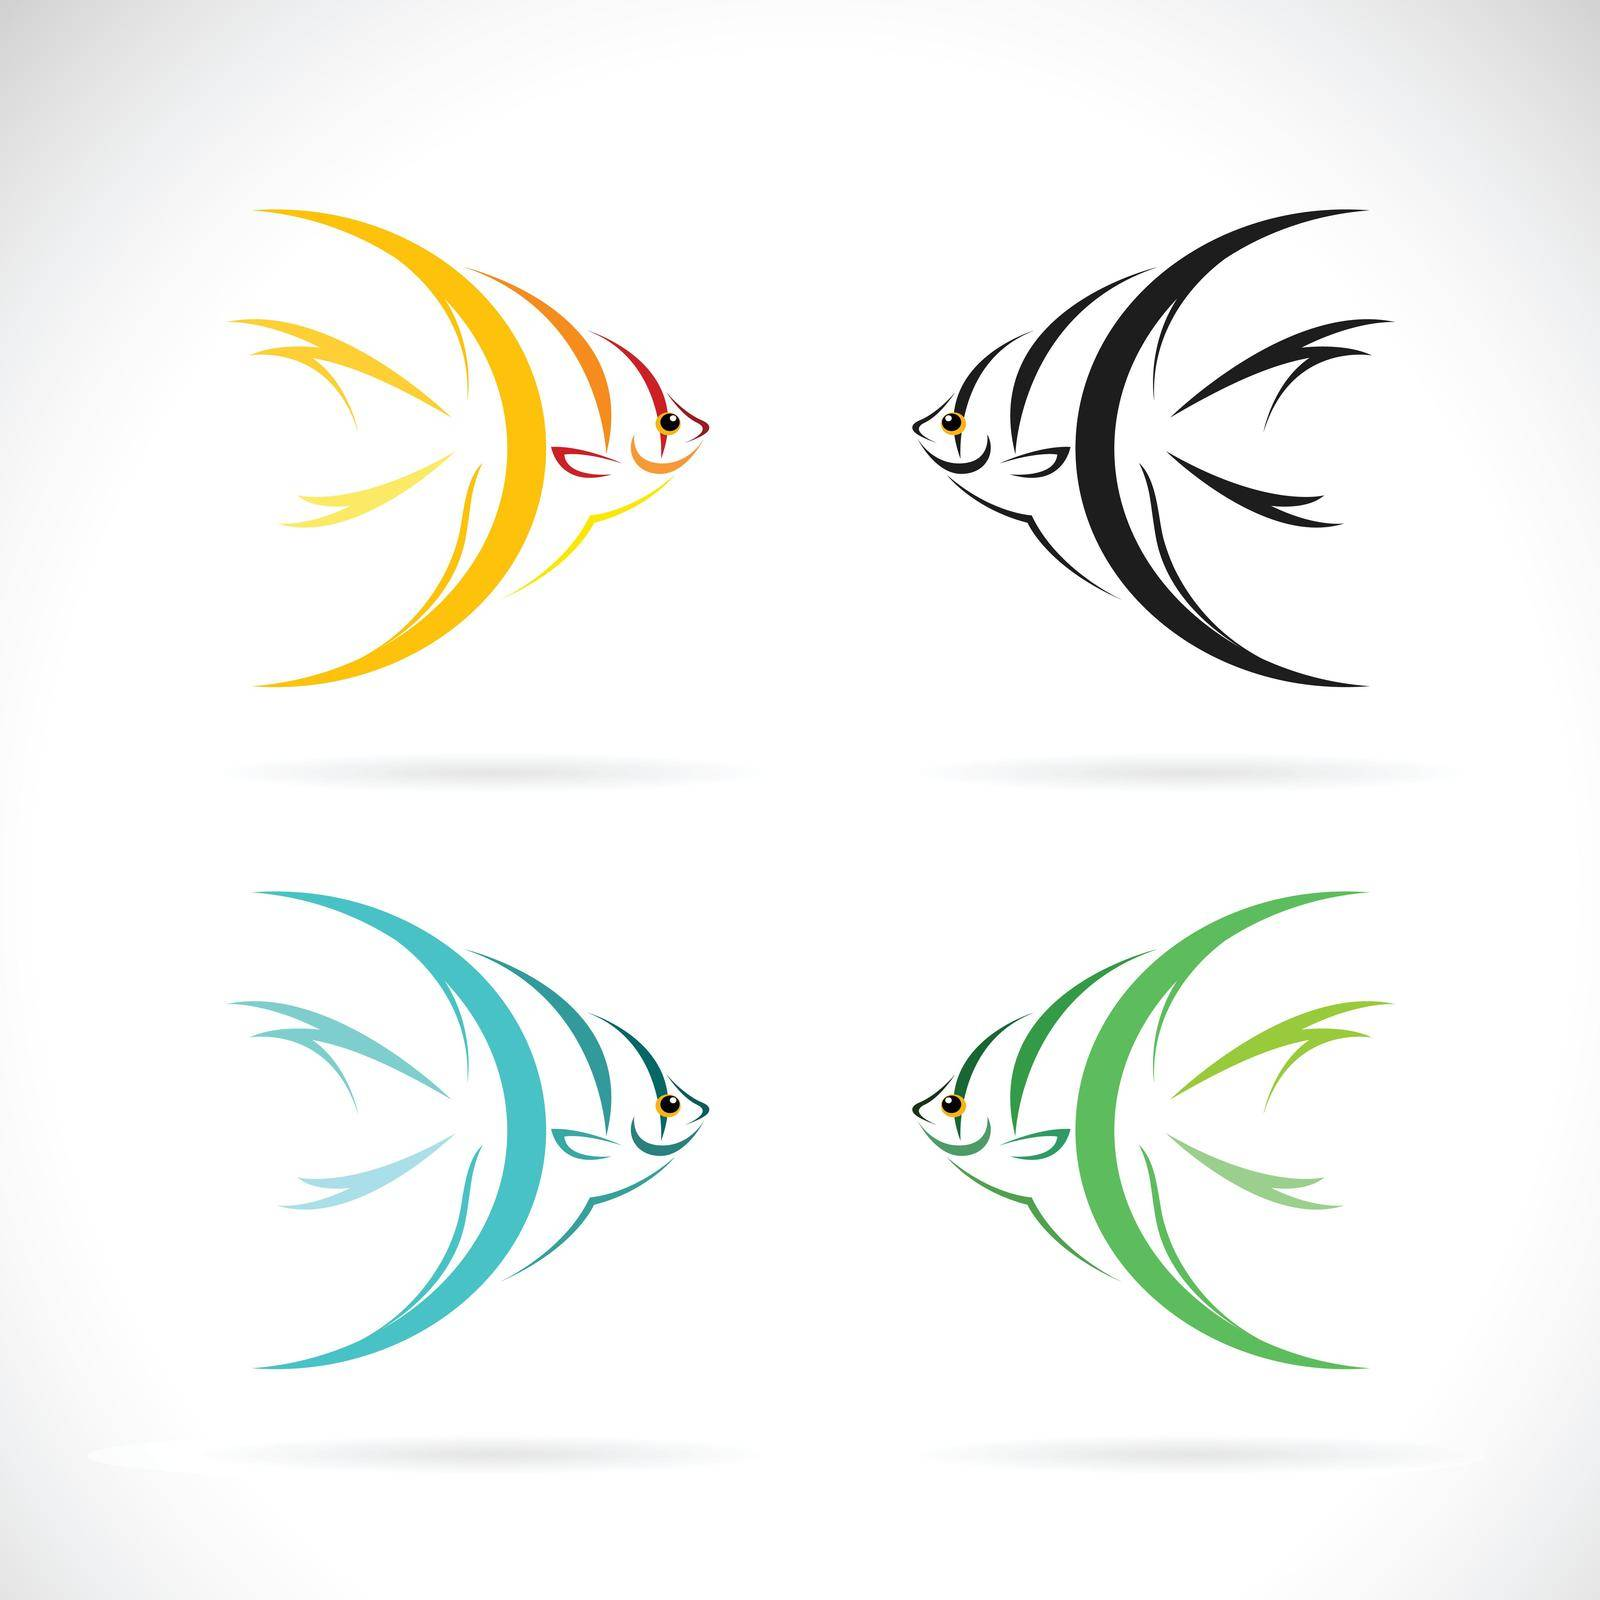 Vector of angel fish design on white background. Easy editable layered vector illustration. Farm Animals. Pets.